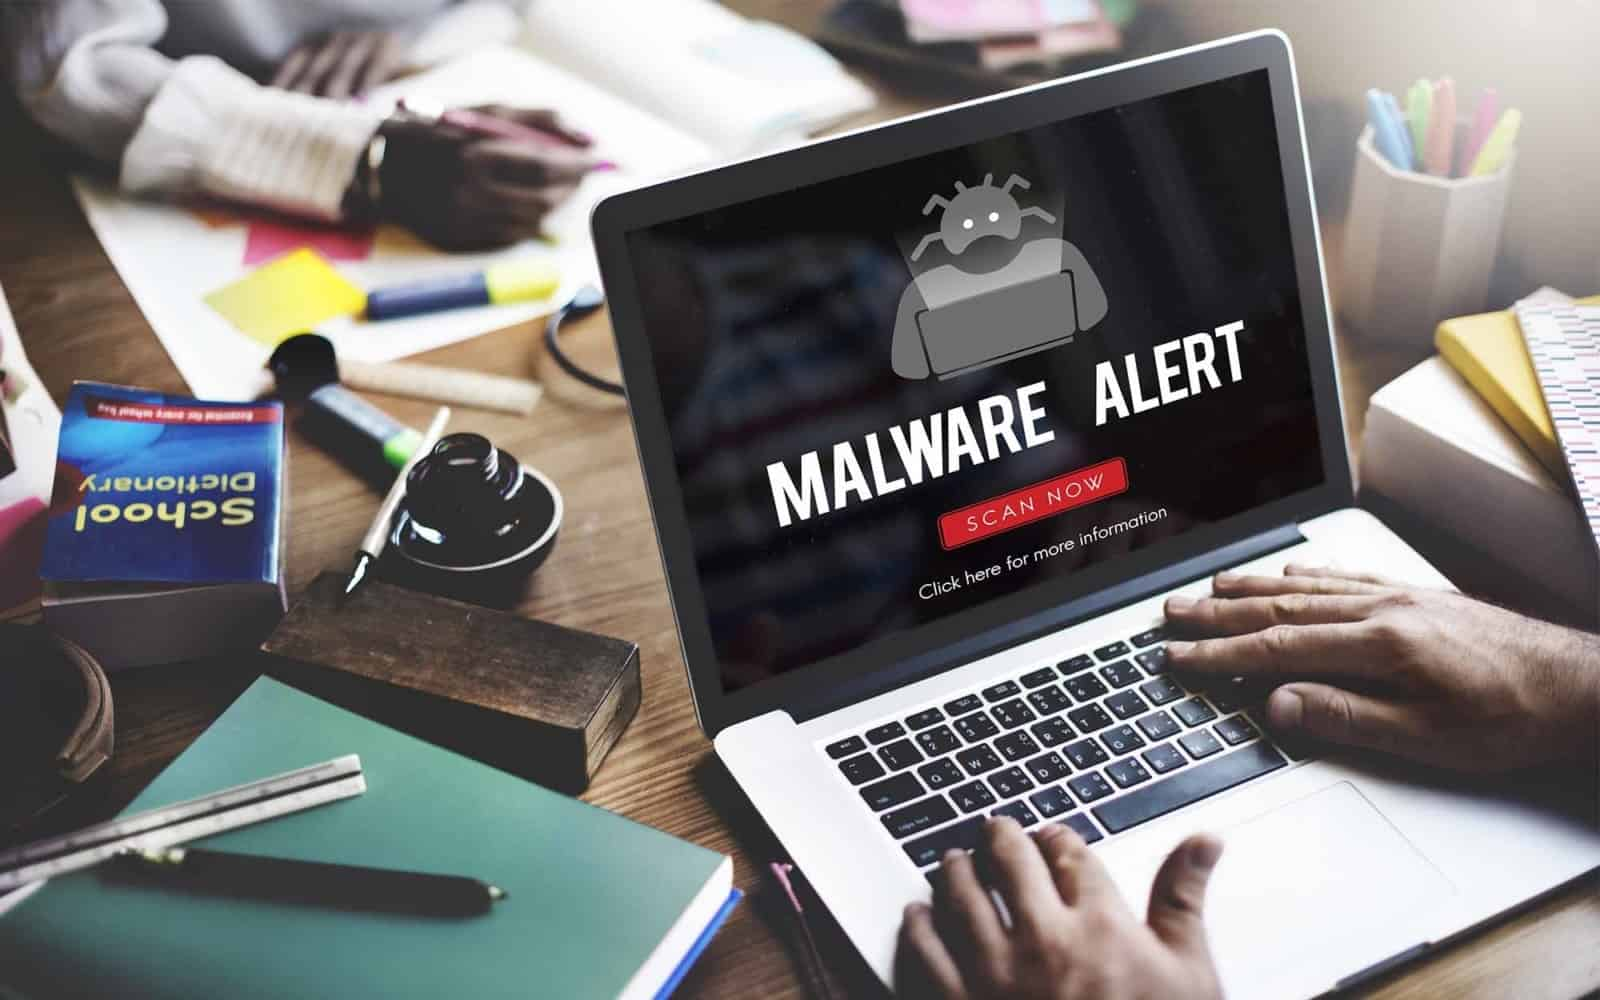 How to Detect Malware & Viruses Preemptively | ITque